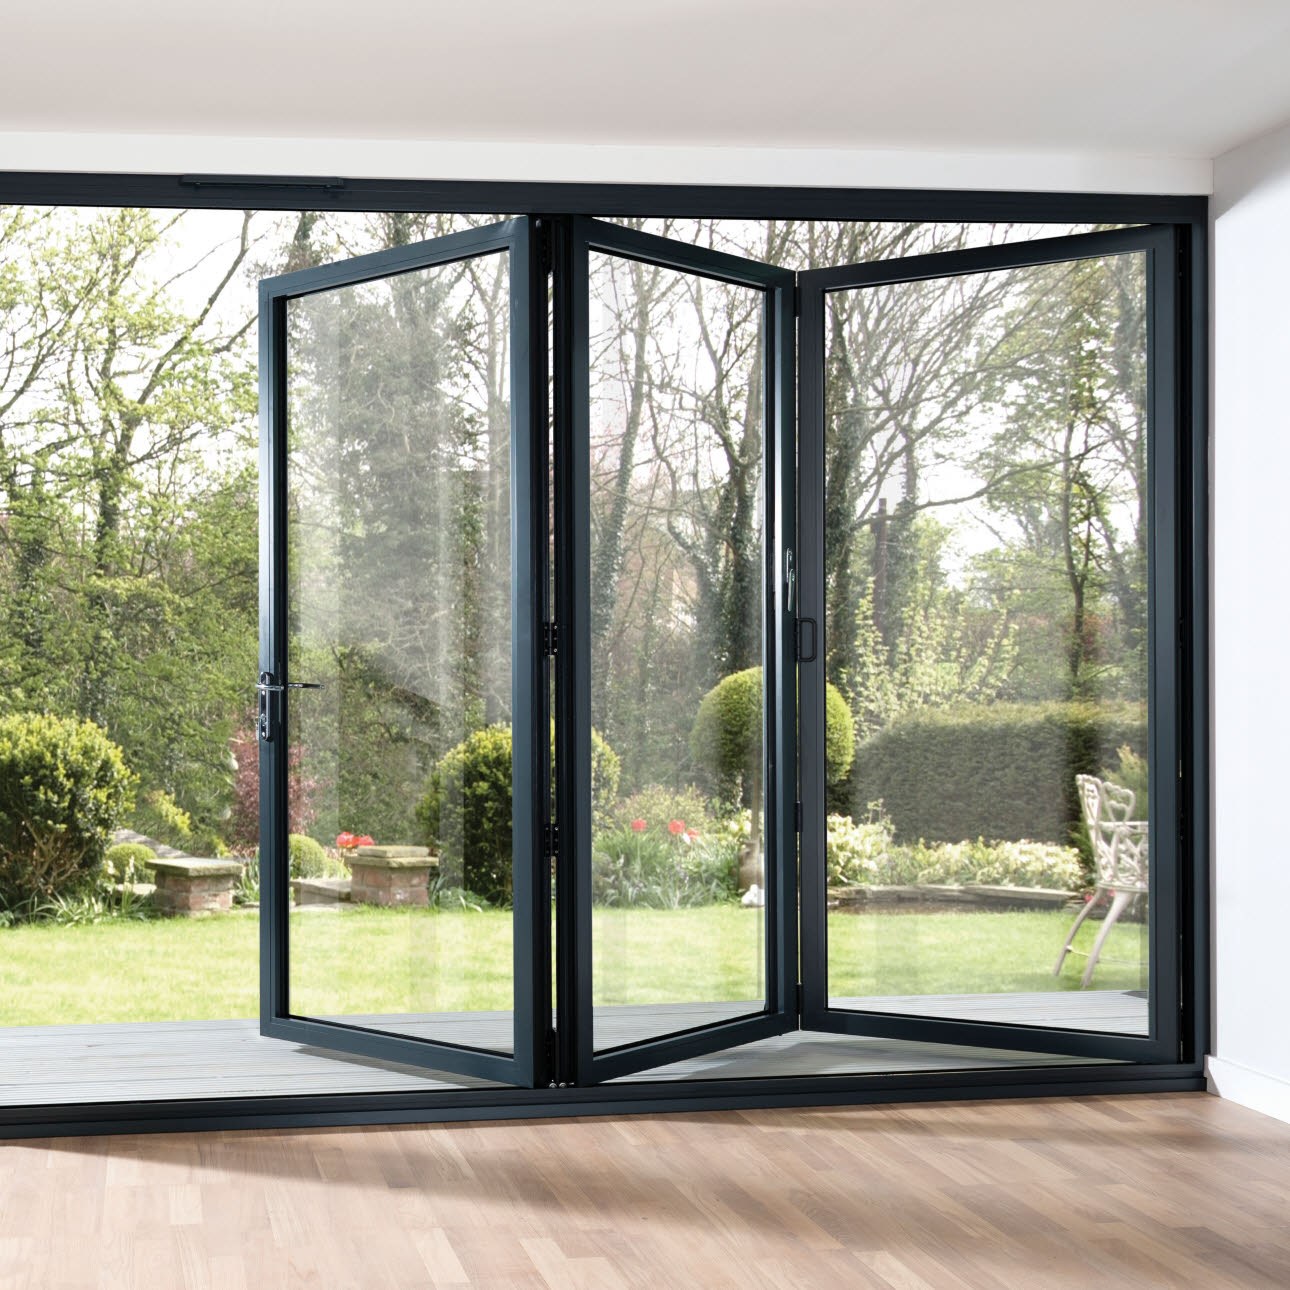 Accordion Glass Doors : Folding french doors exterior the door that brings